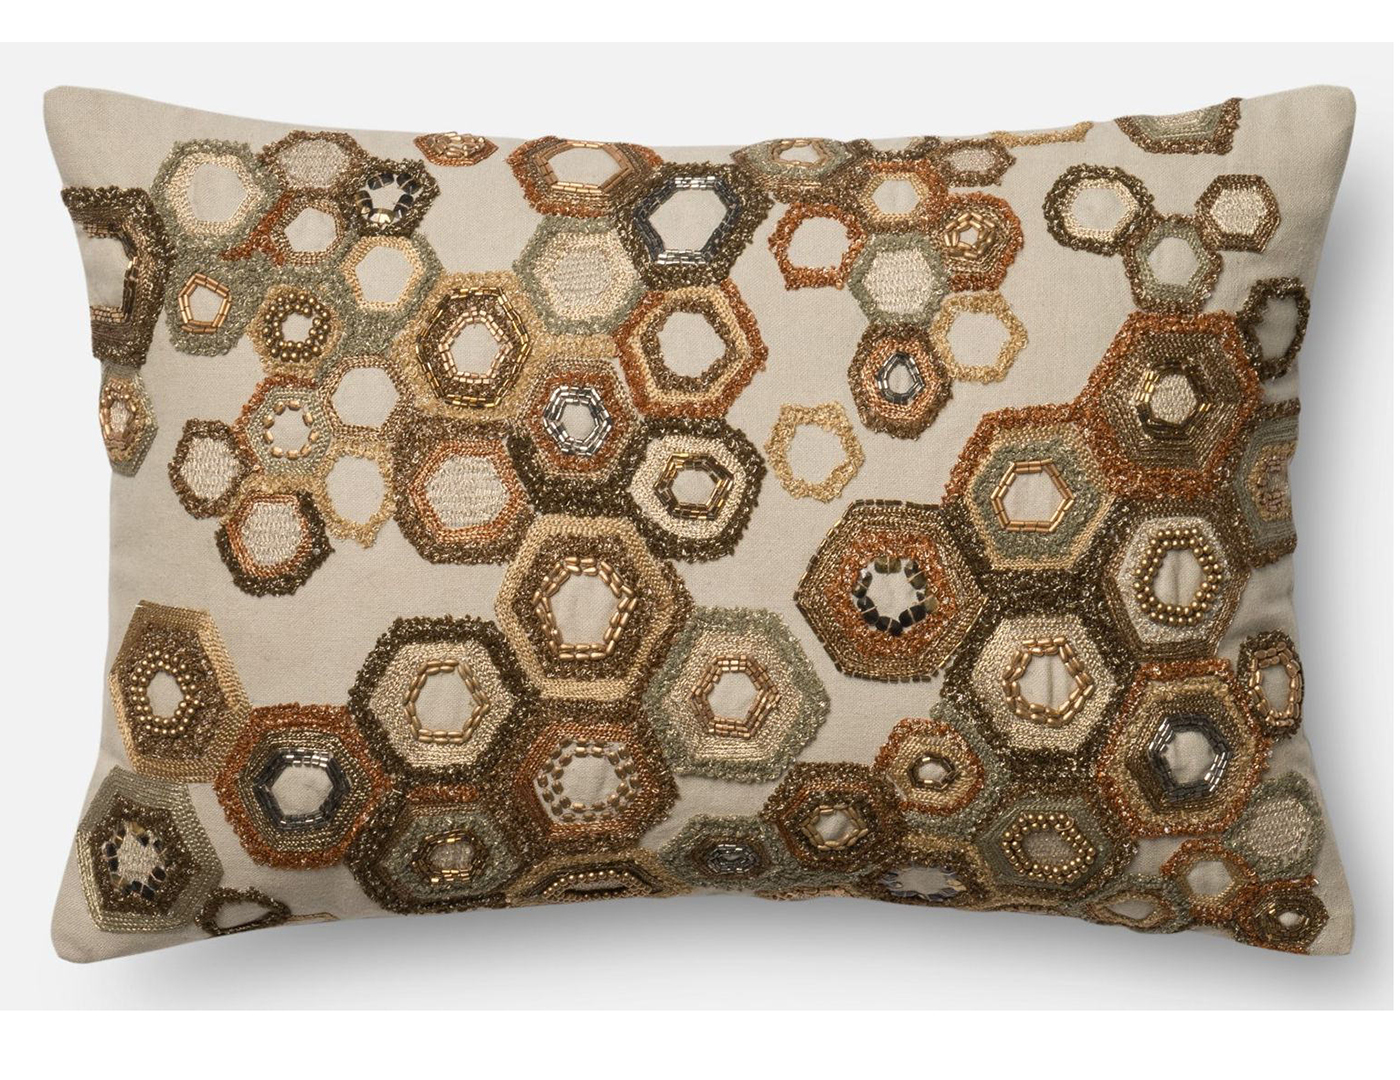 Hexagon Decorative Pillow